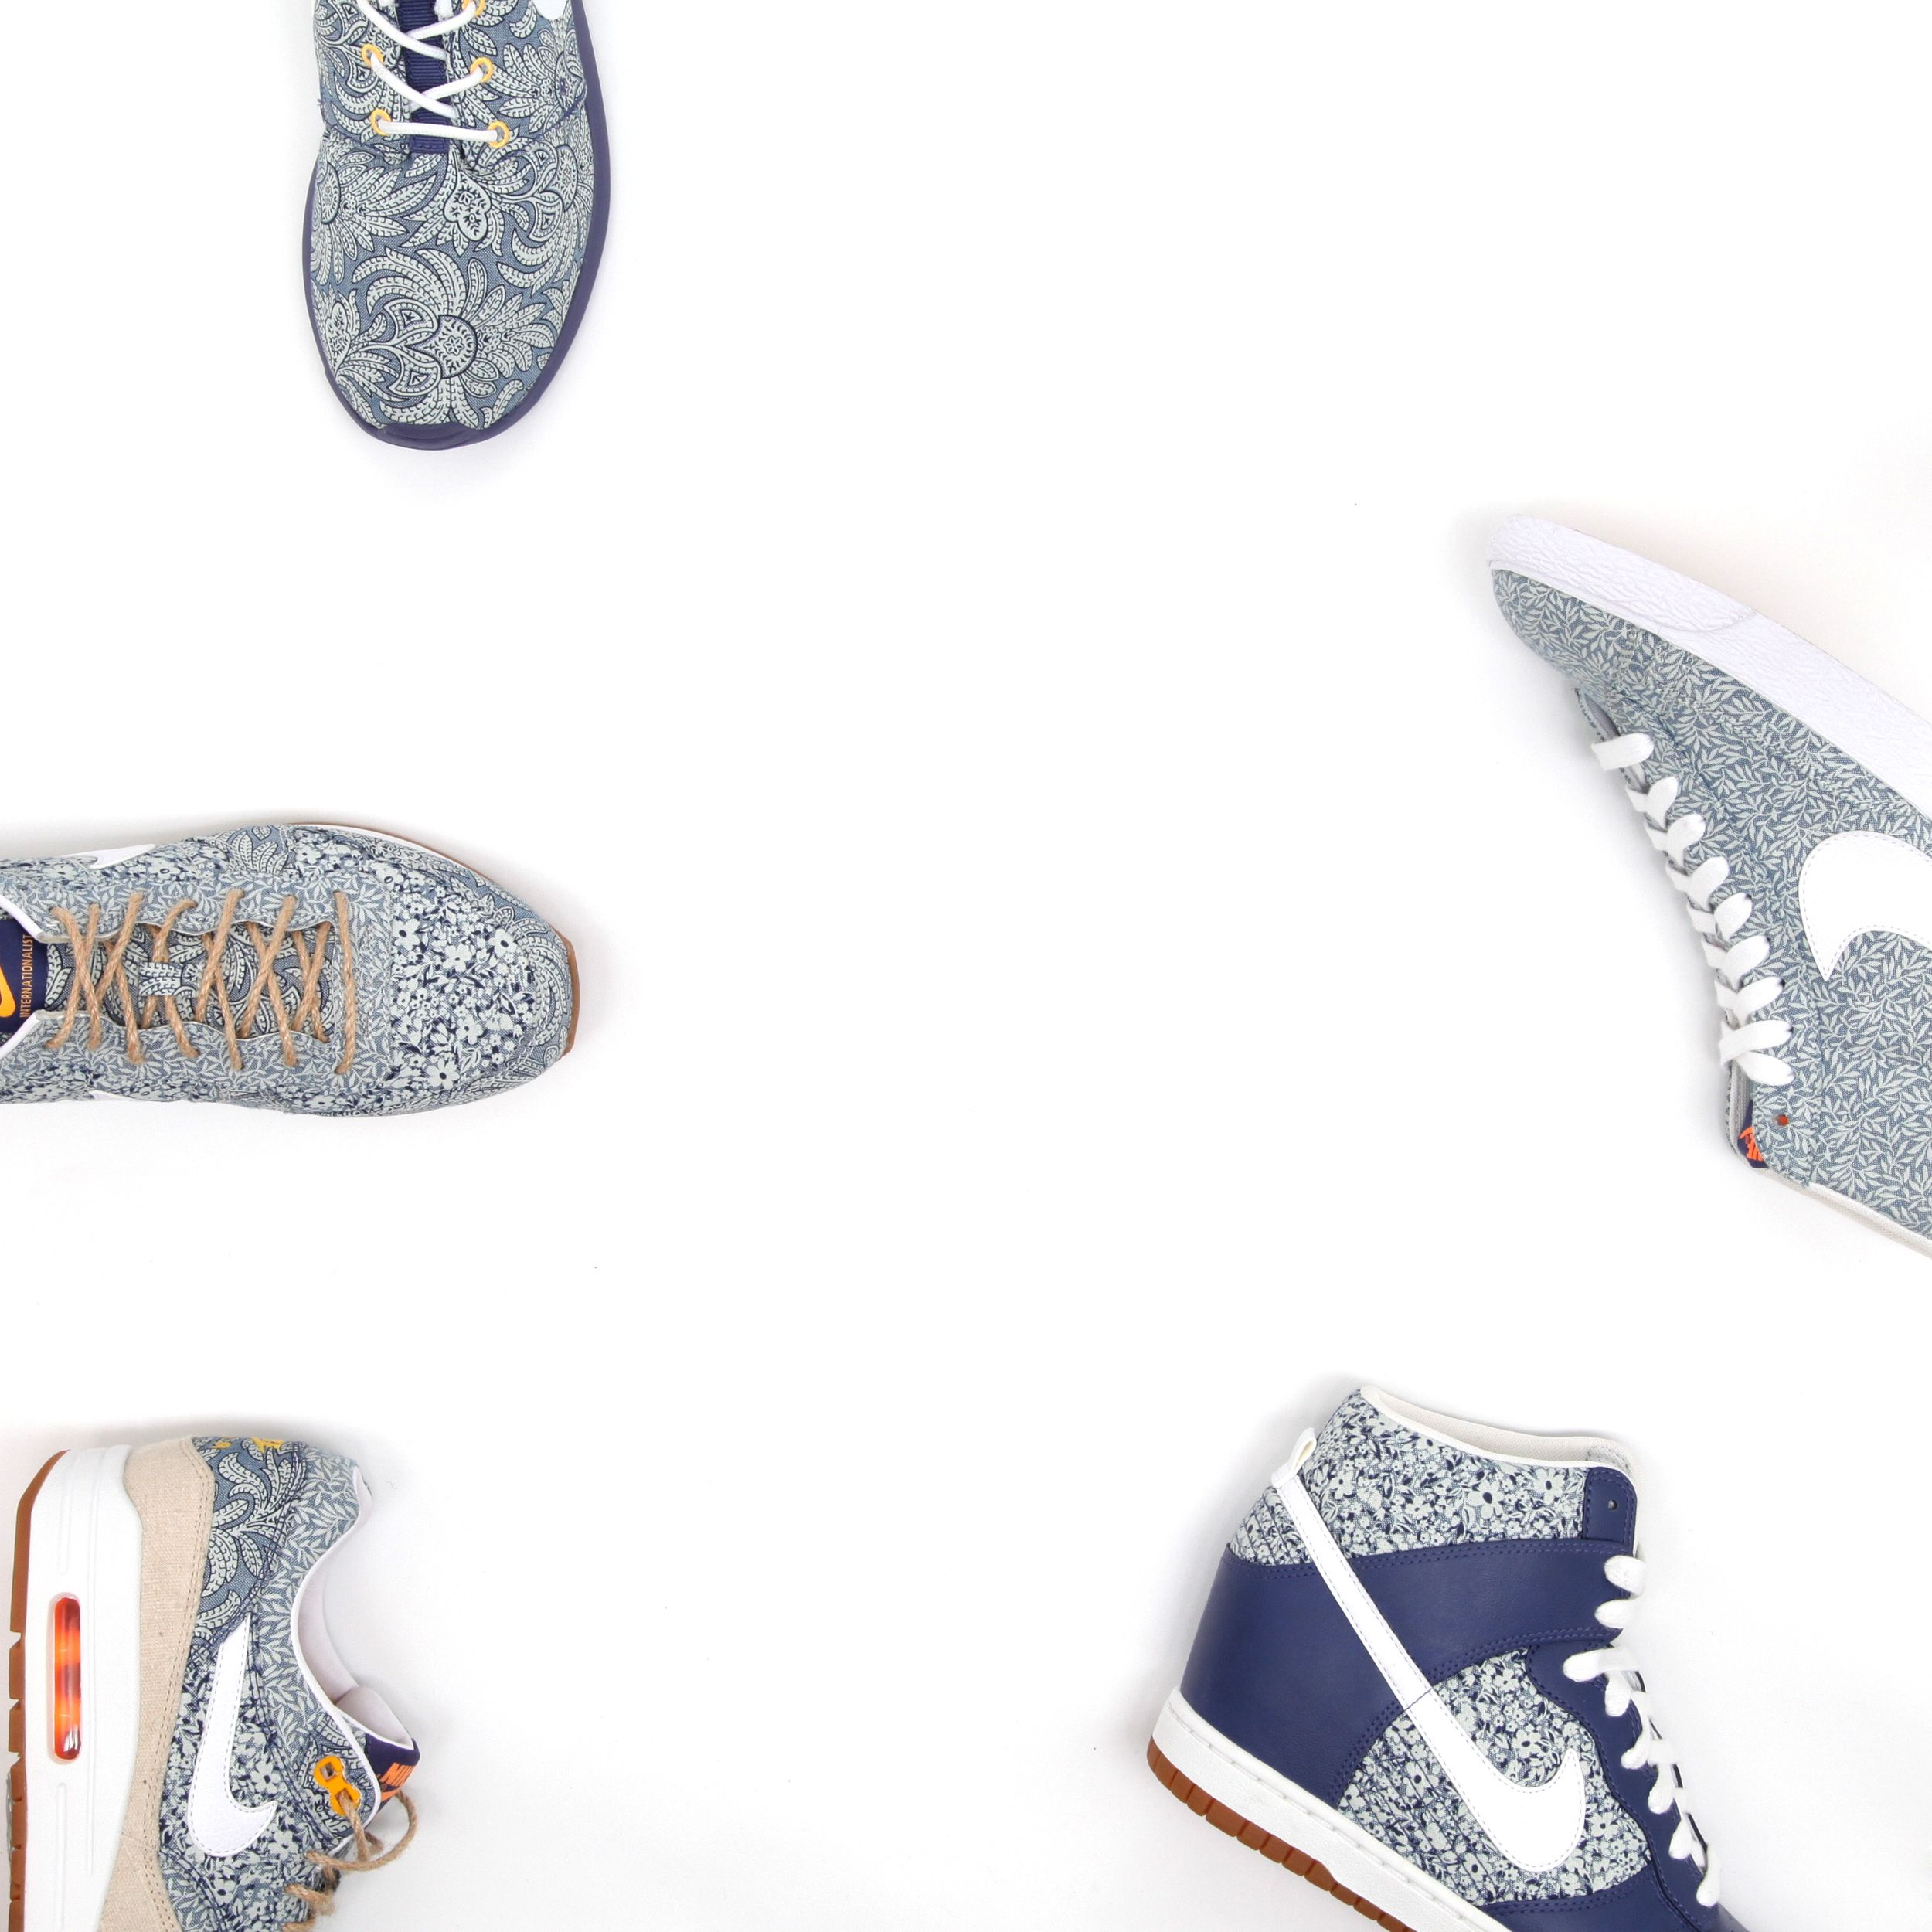 The next Nike X #LibertyPrint collection launches exclusively in-store and online at Liberty.co.uk on Monday 7th April. Do you know which style you like best yet? Find them all here: http://www.liberty.co.uk/fcp/categorylist/designer/nike